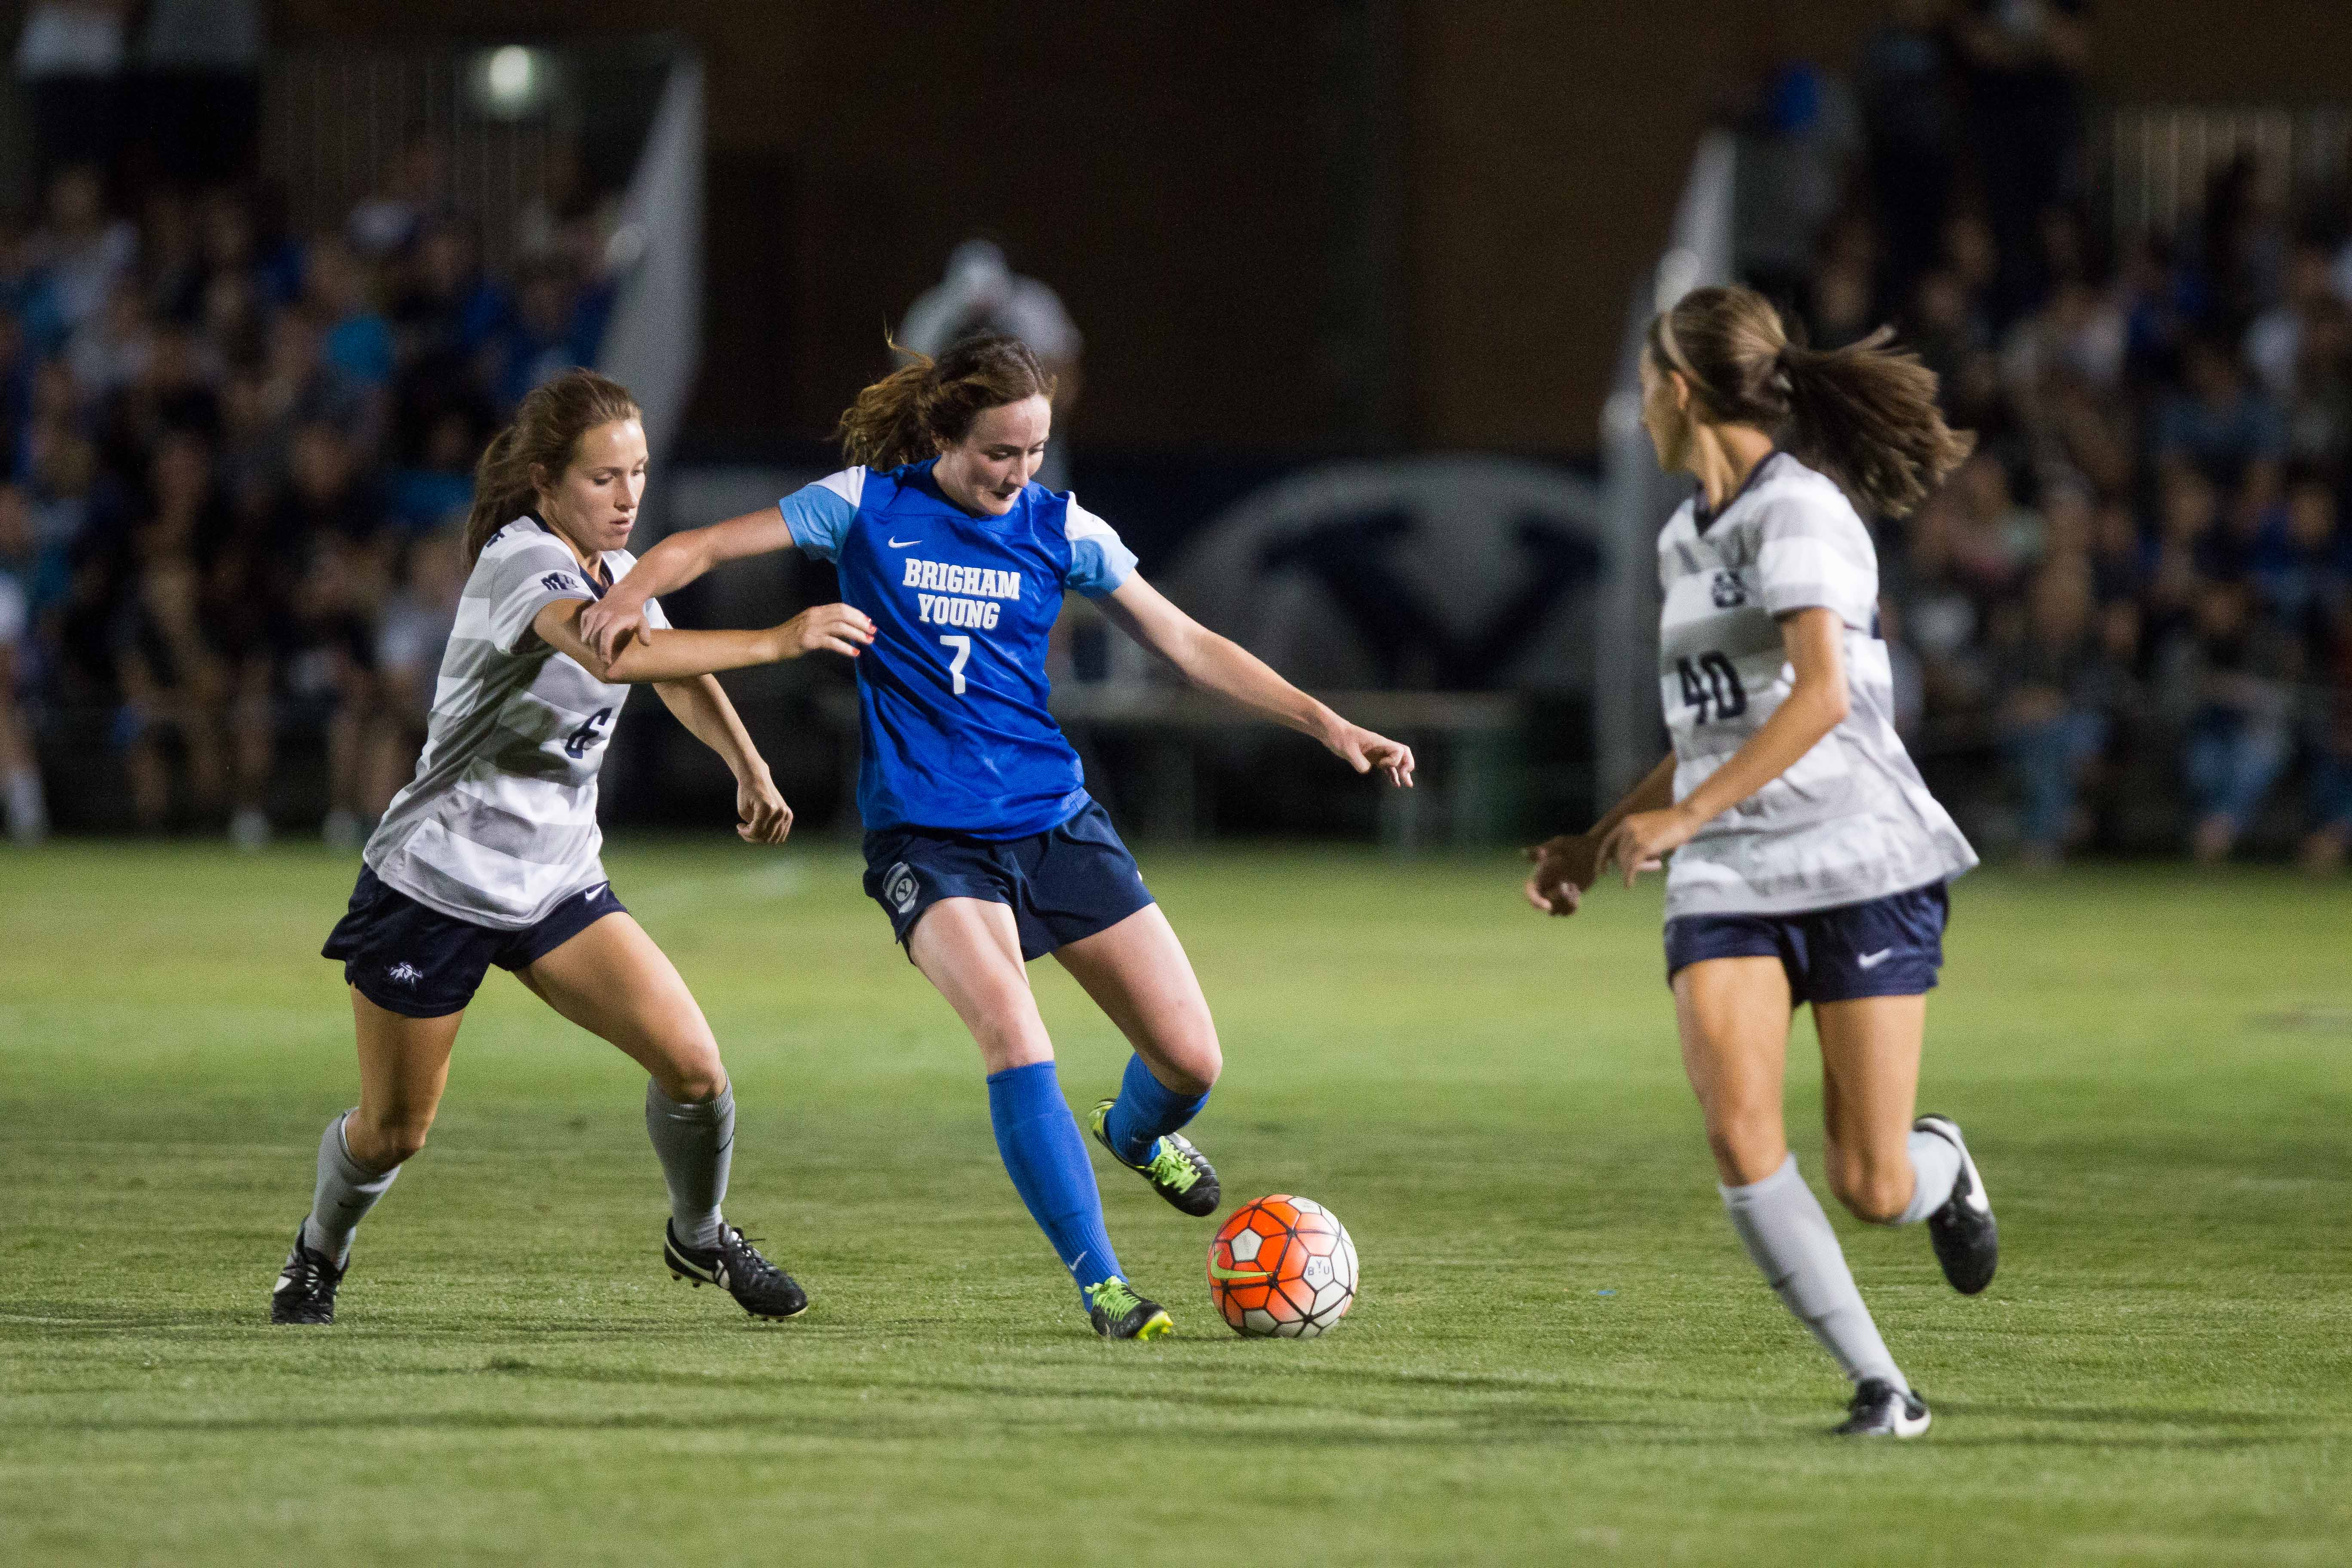 Michele Murphy Vasconcelos passes the ball  in the game against Utah state University. Murphy Vasconcelos earned the WCC player of the week award due to her double-assists against Long Beach State on Saturday. (Ari Davis)